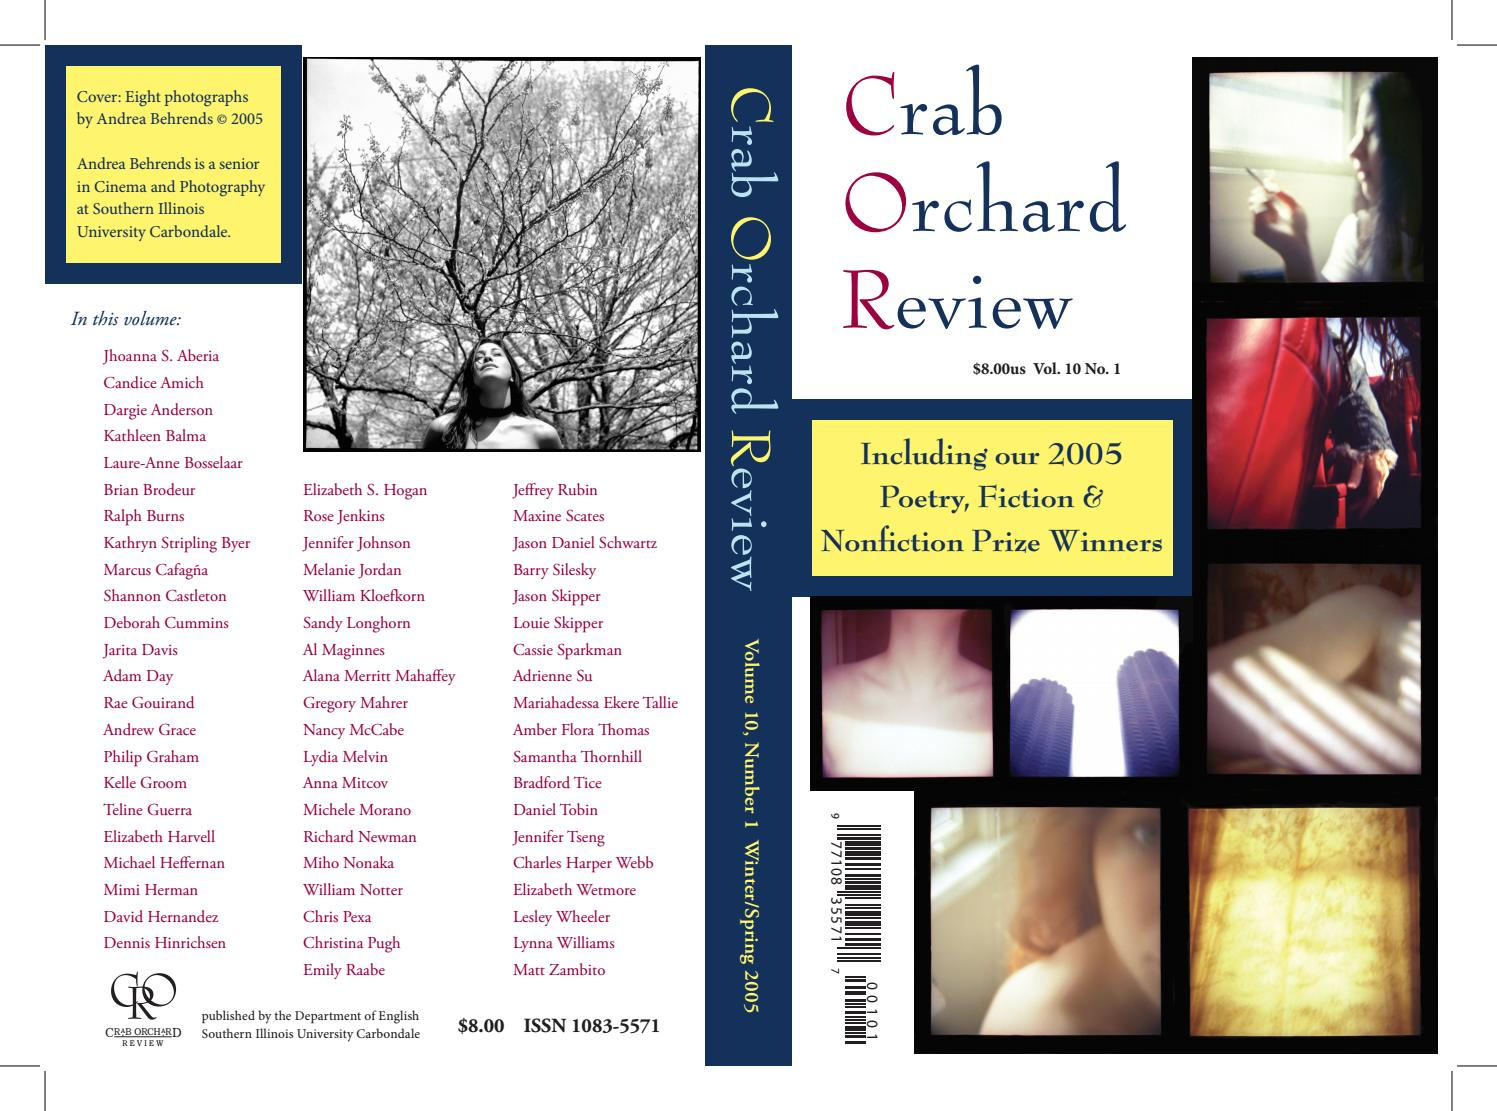 Crab Orchard Review Vol 10 No 1 W/S 2005 by Crab Orchard